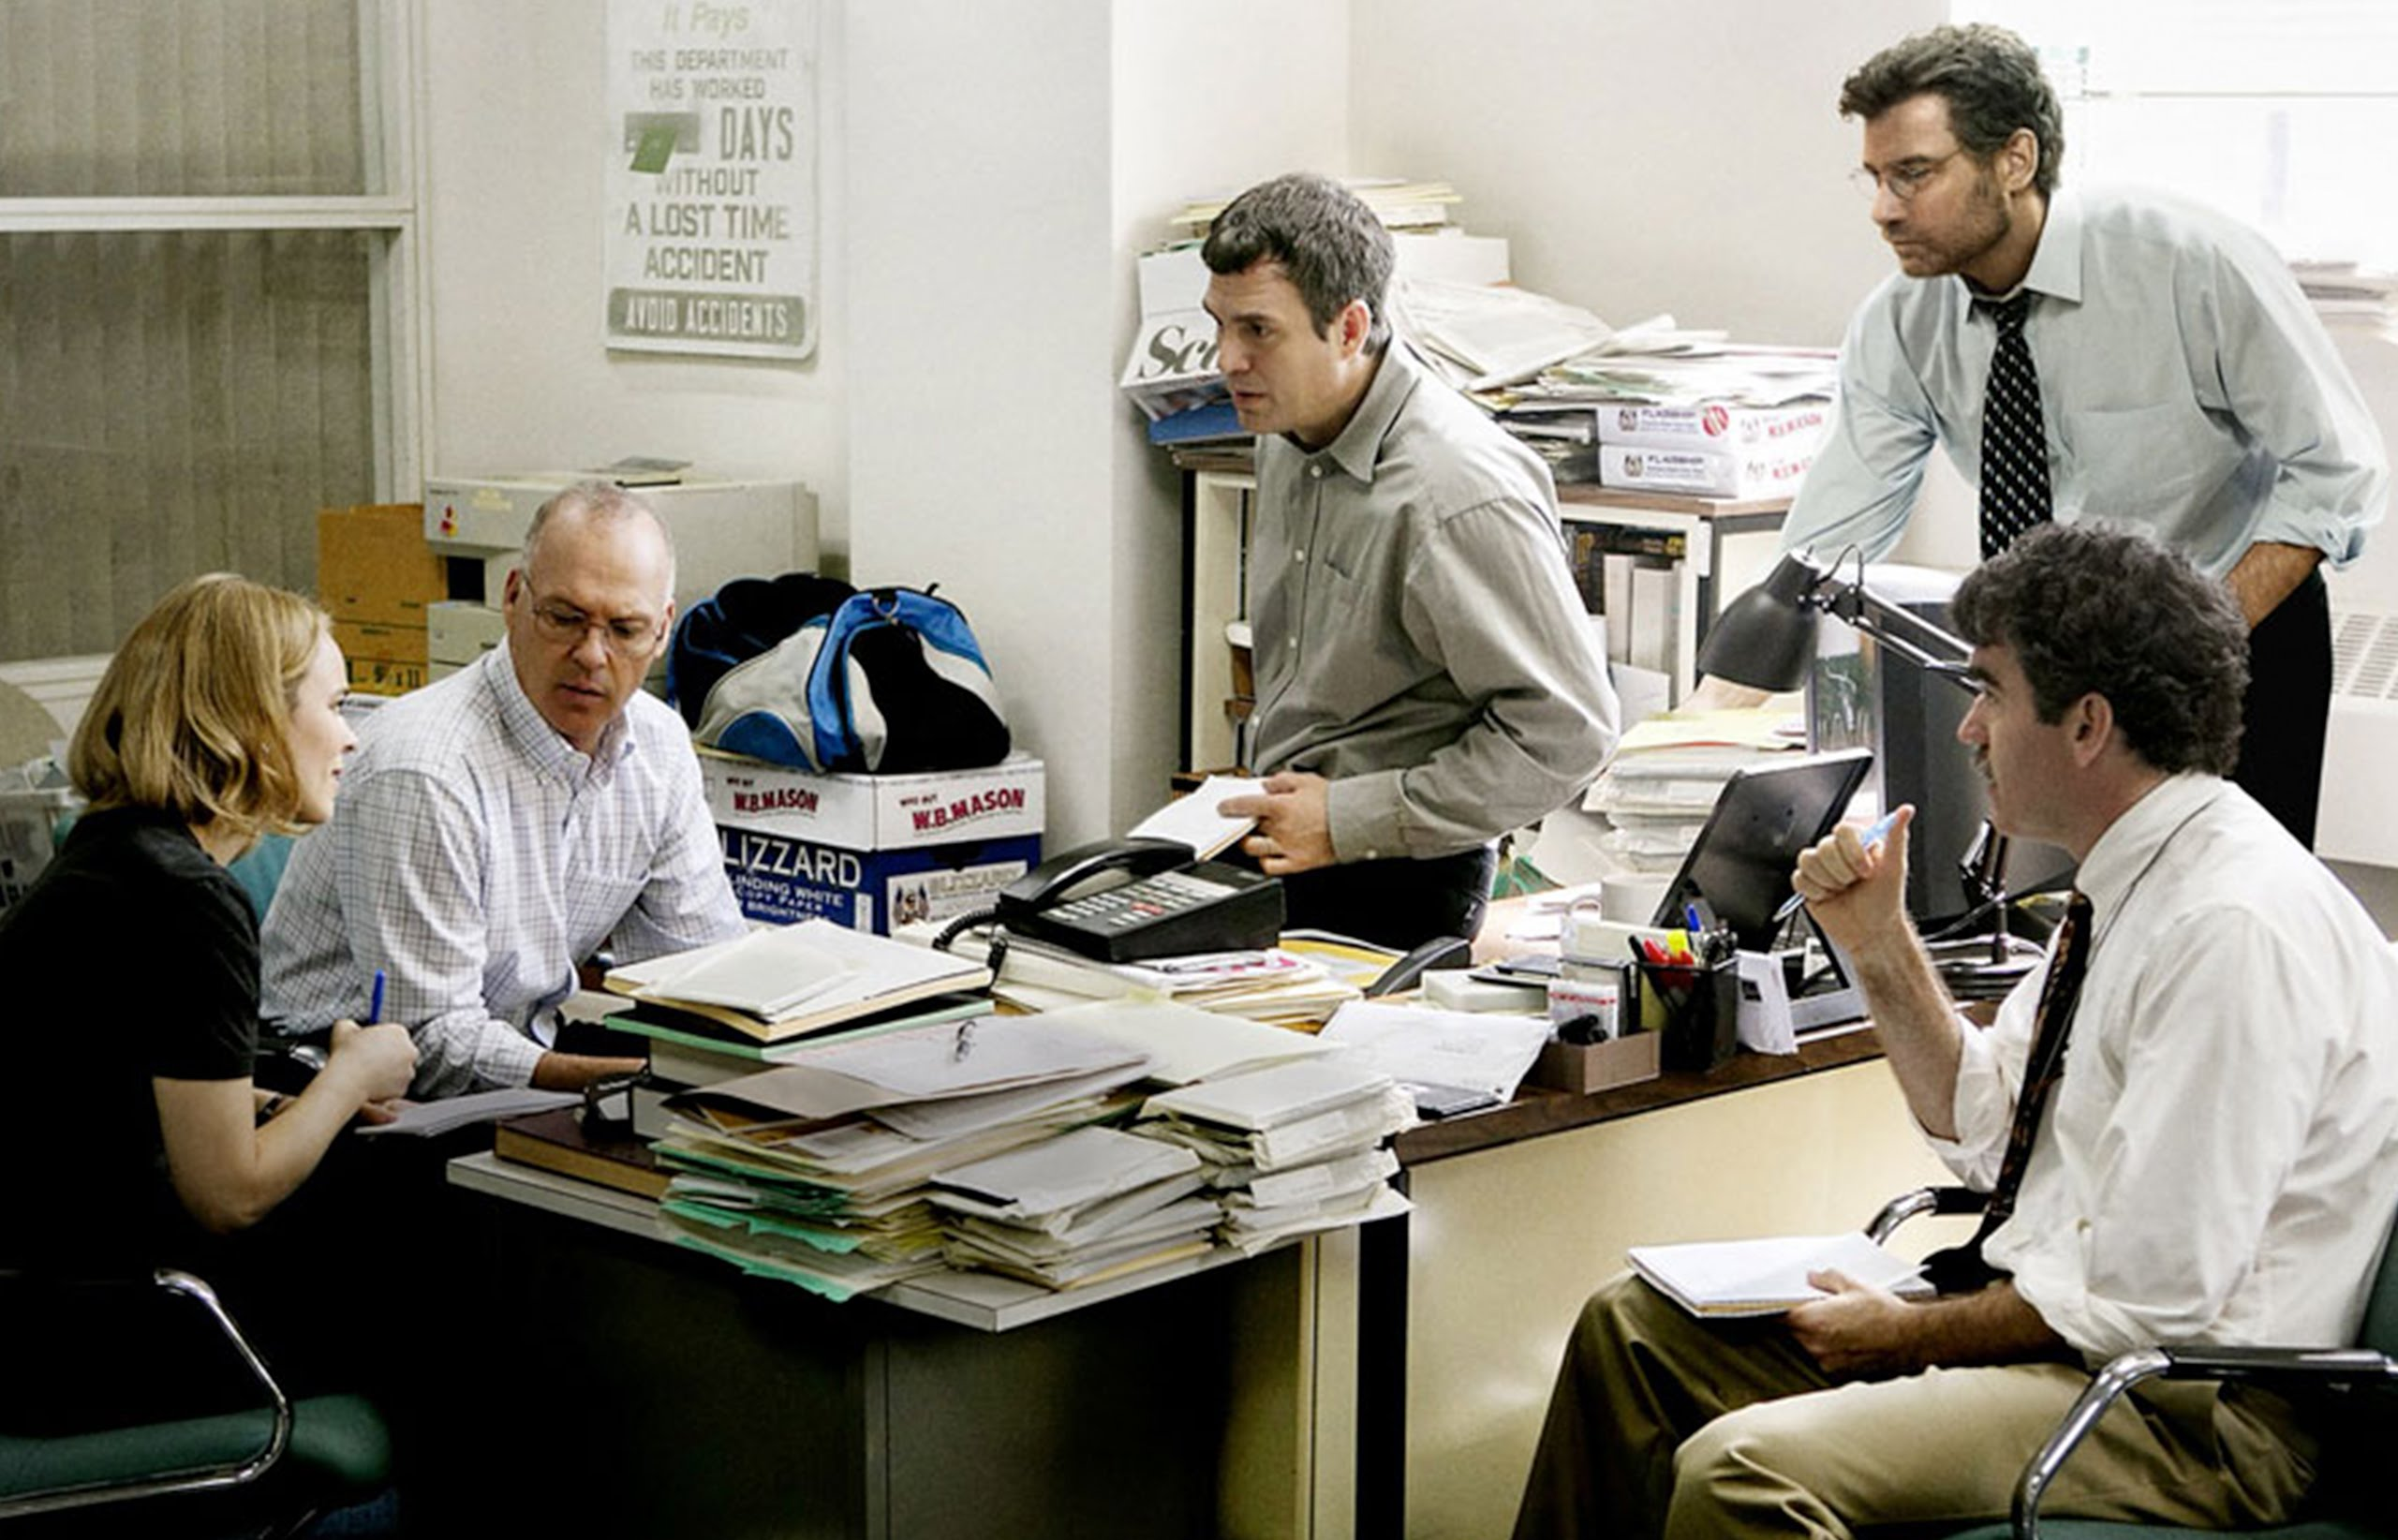 Journalism movies: Spotlight